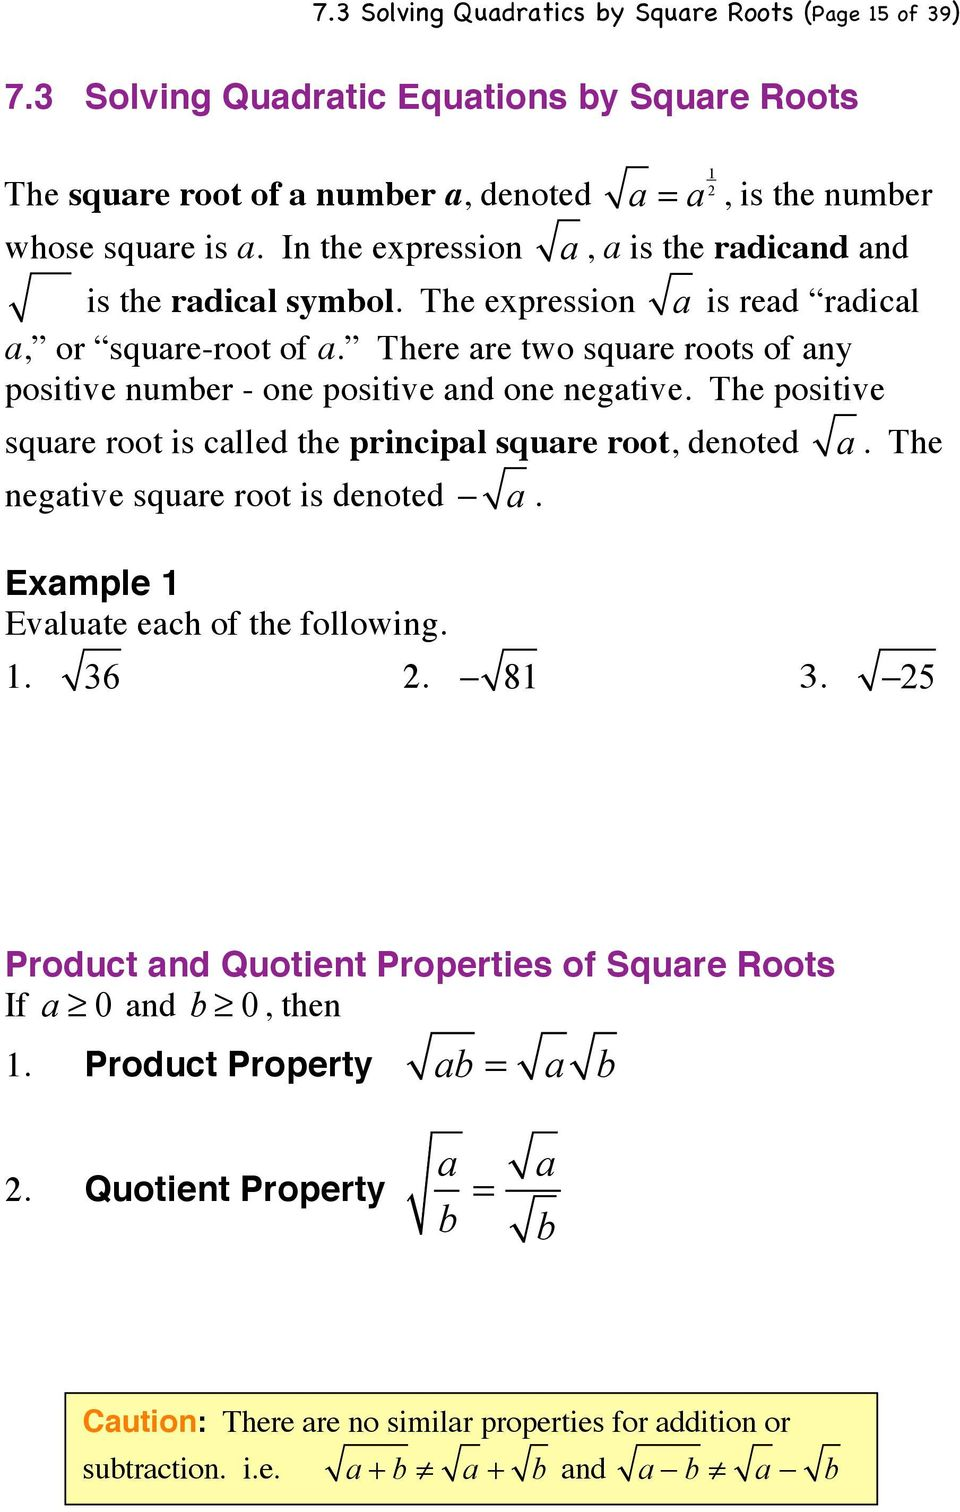 There are two square roots of any positive number - one positive and one negative. The positive square root is called the principal square root, denoted negative square root is denoted! a. Example 1 Evaluate each of the following.